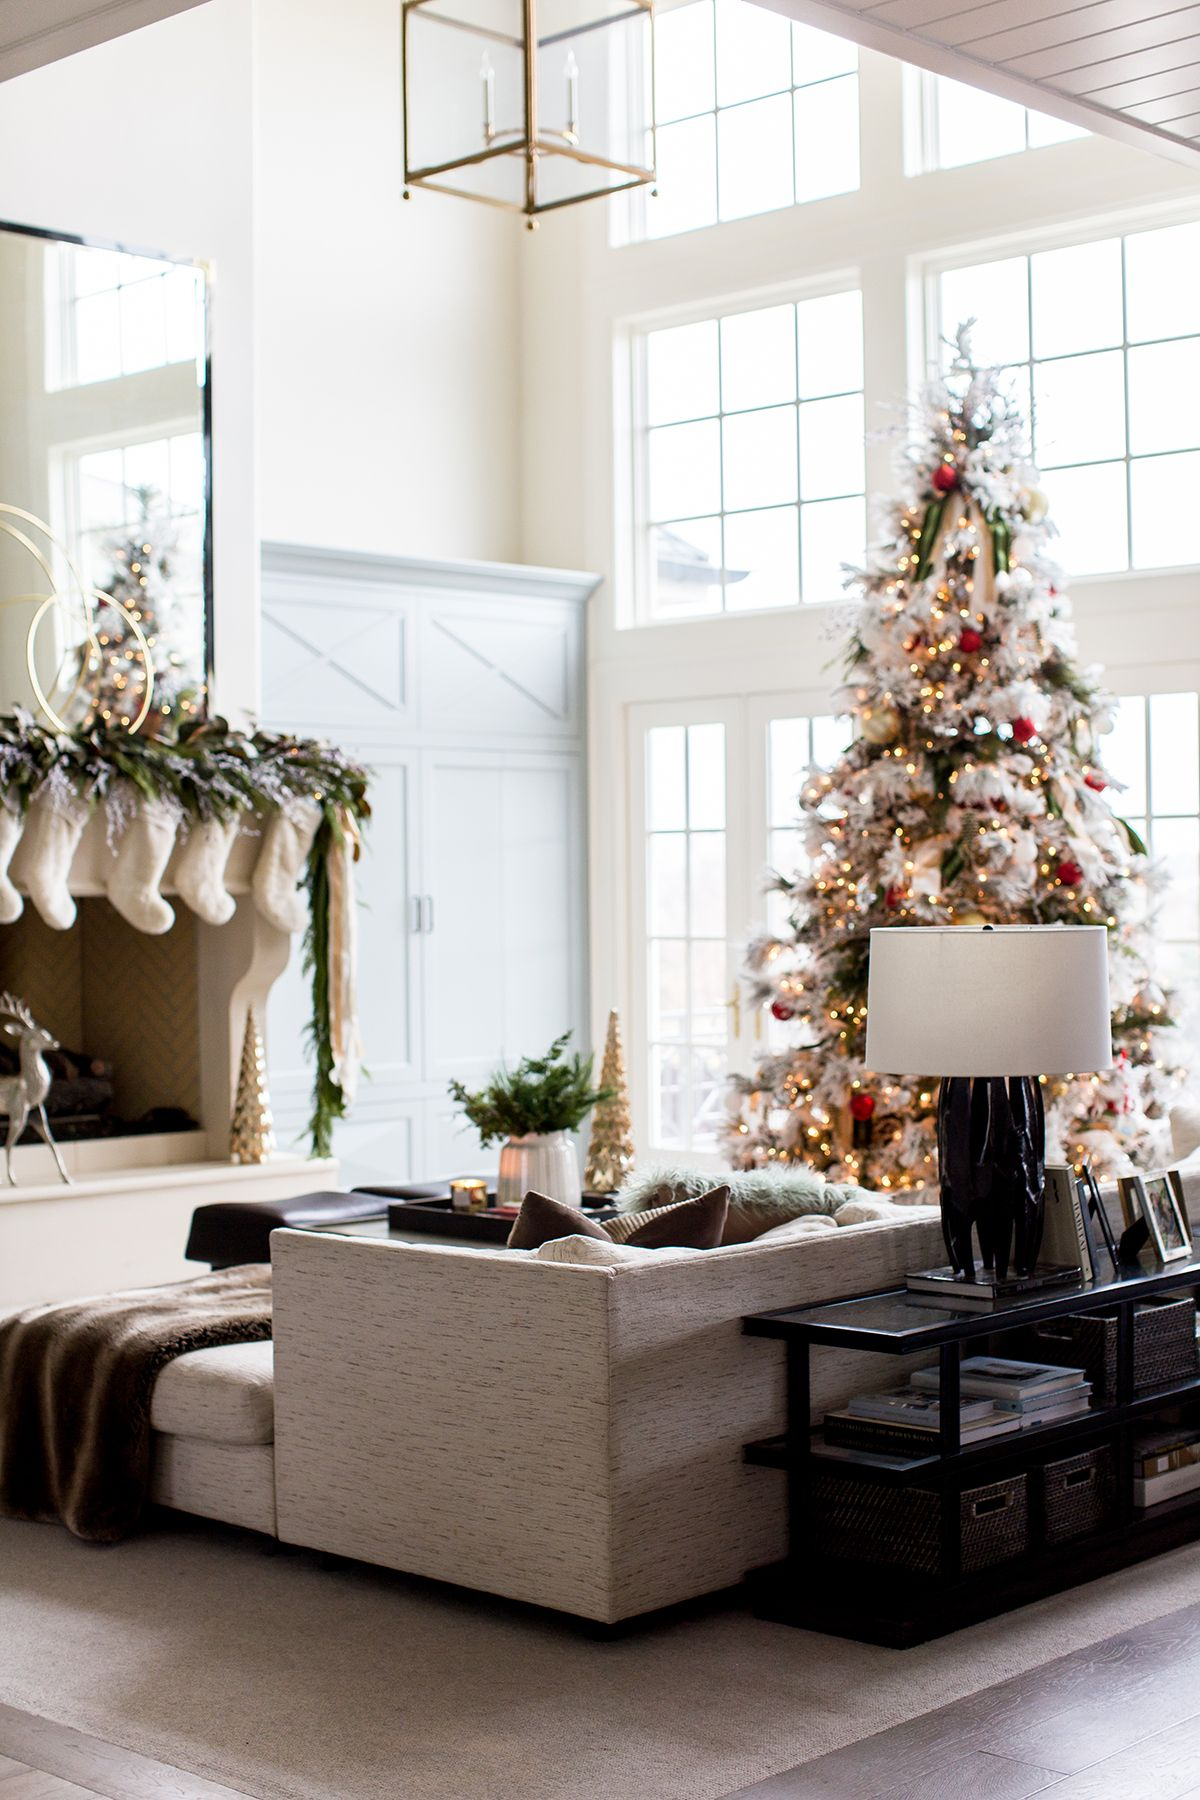 Our Home for Christmas | Ivory Lane blog/My looks | Pinterest ...